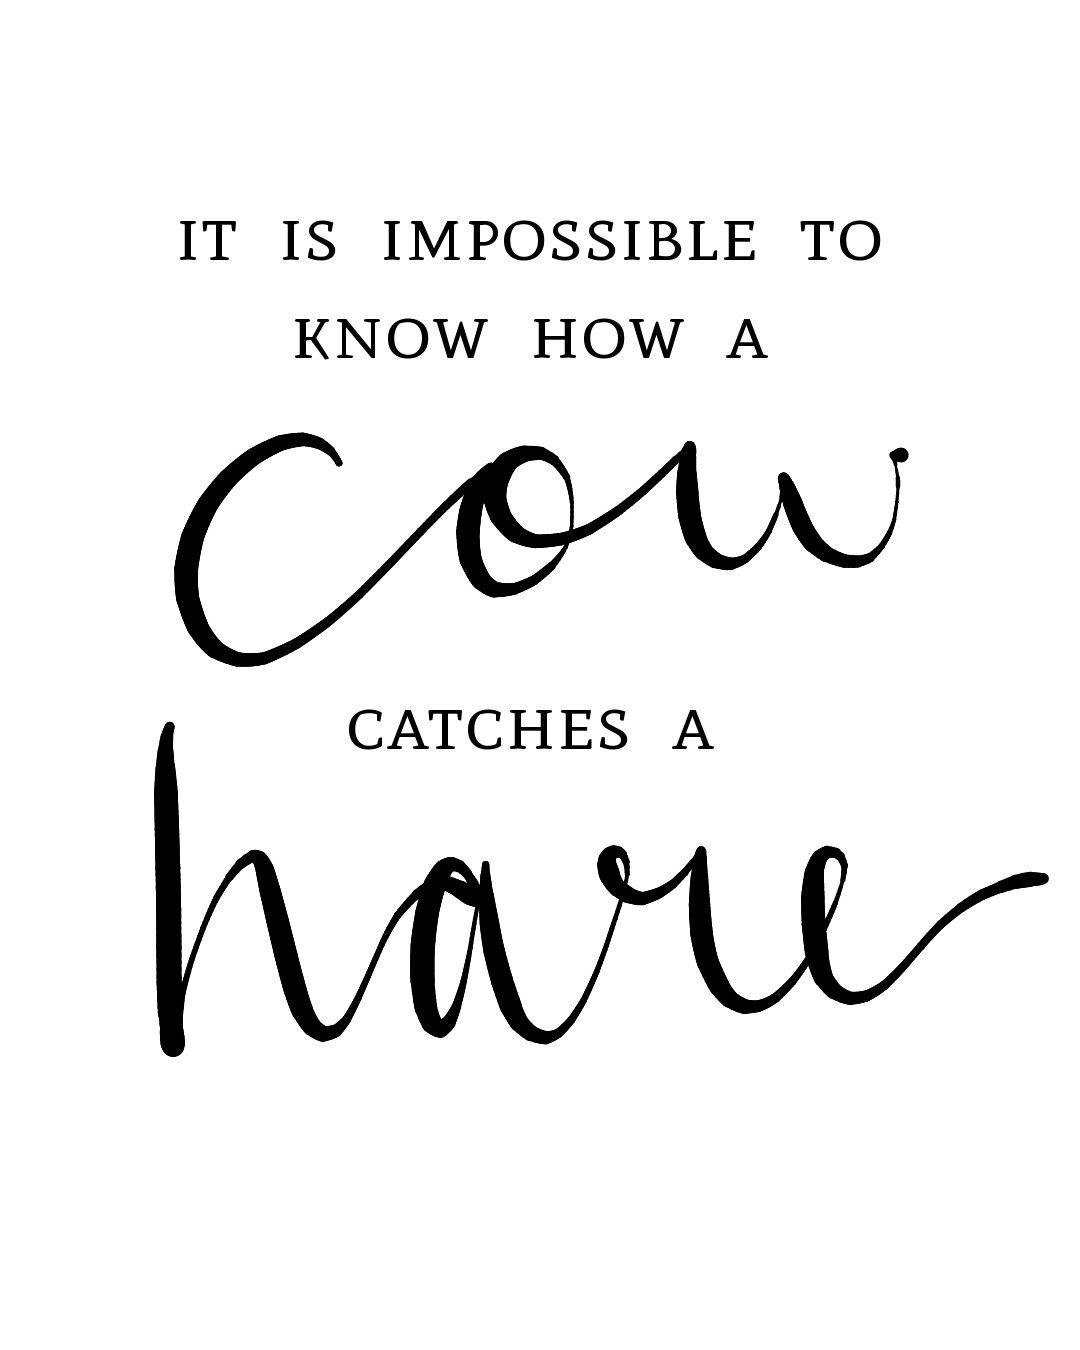 Amazing dutch idiom- it means that nothing is impossible